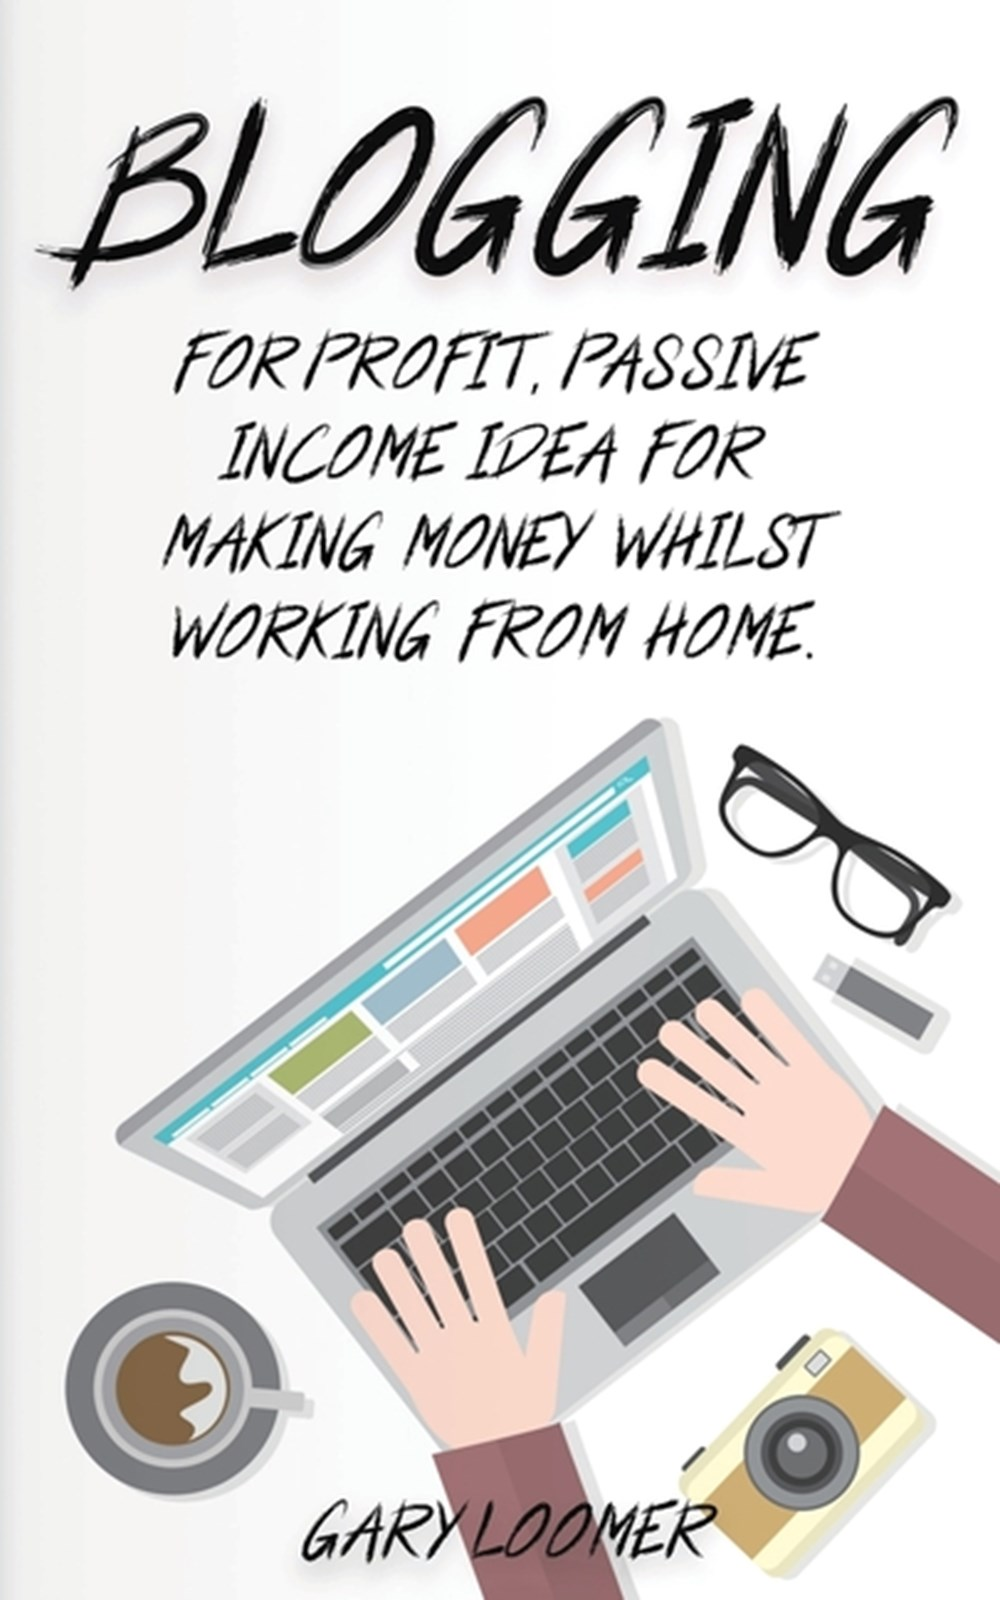 Blogging For profit, passive income idea for making money whilst working from Home